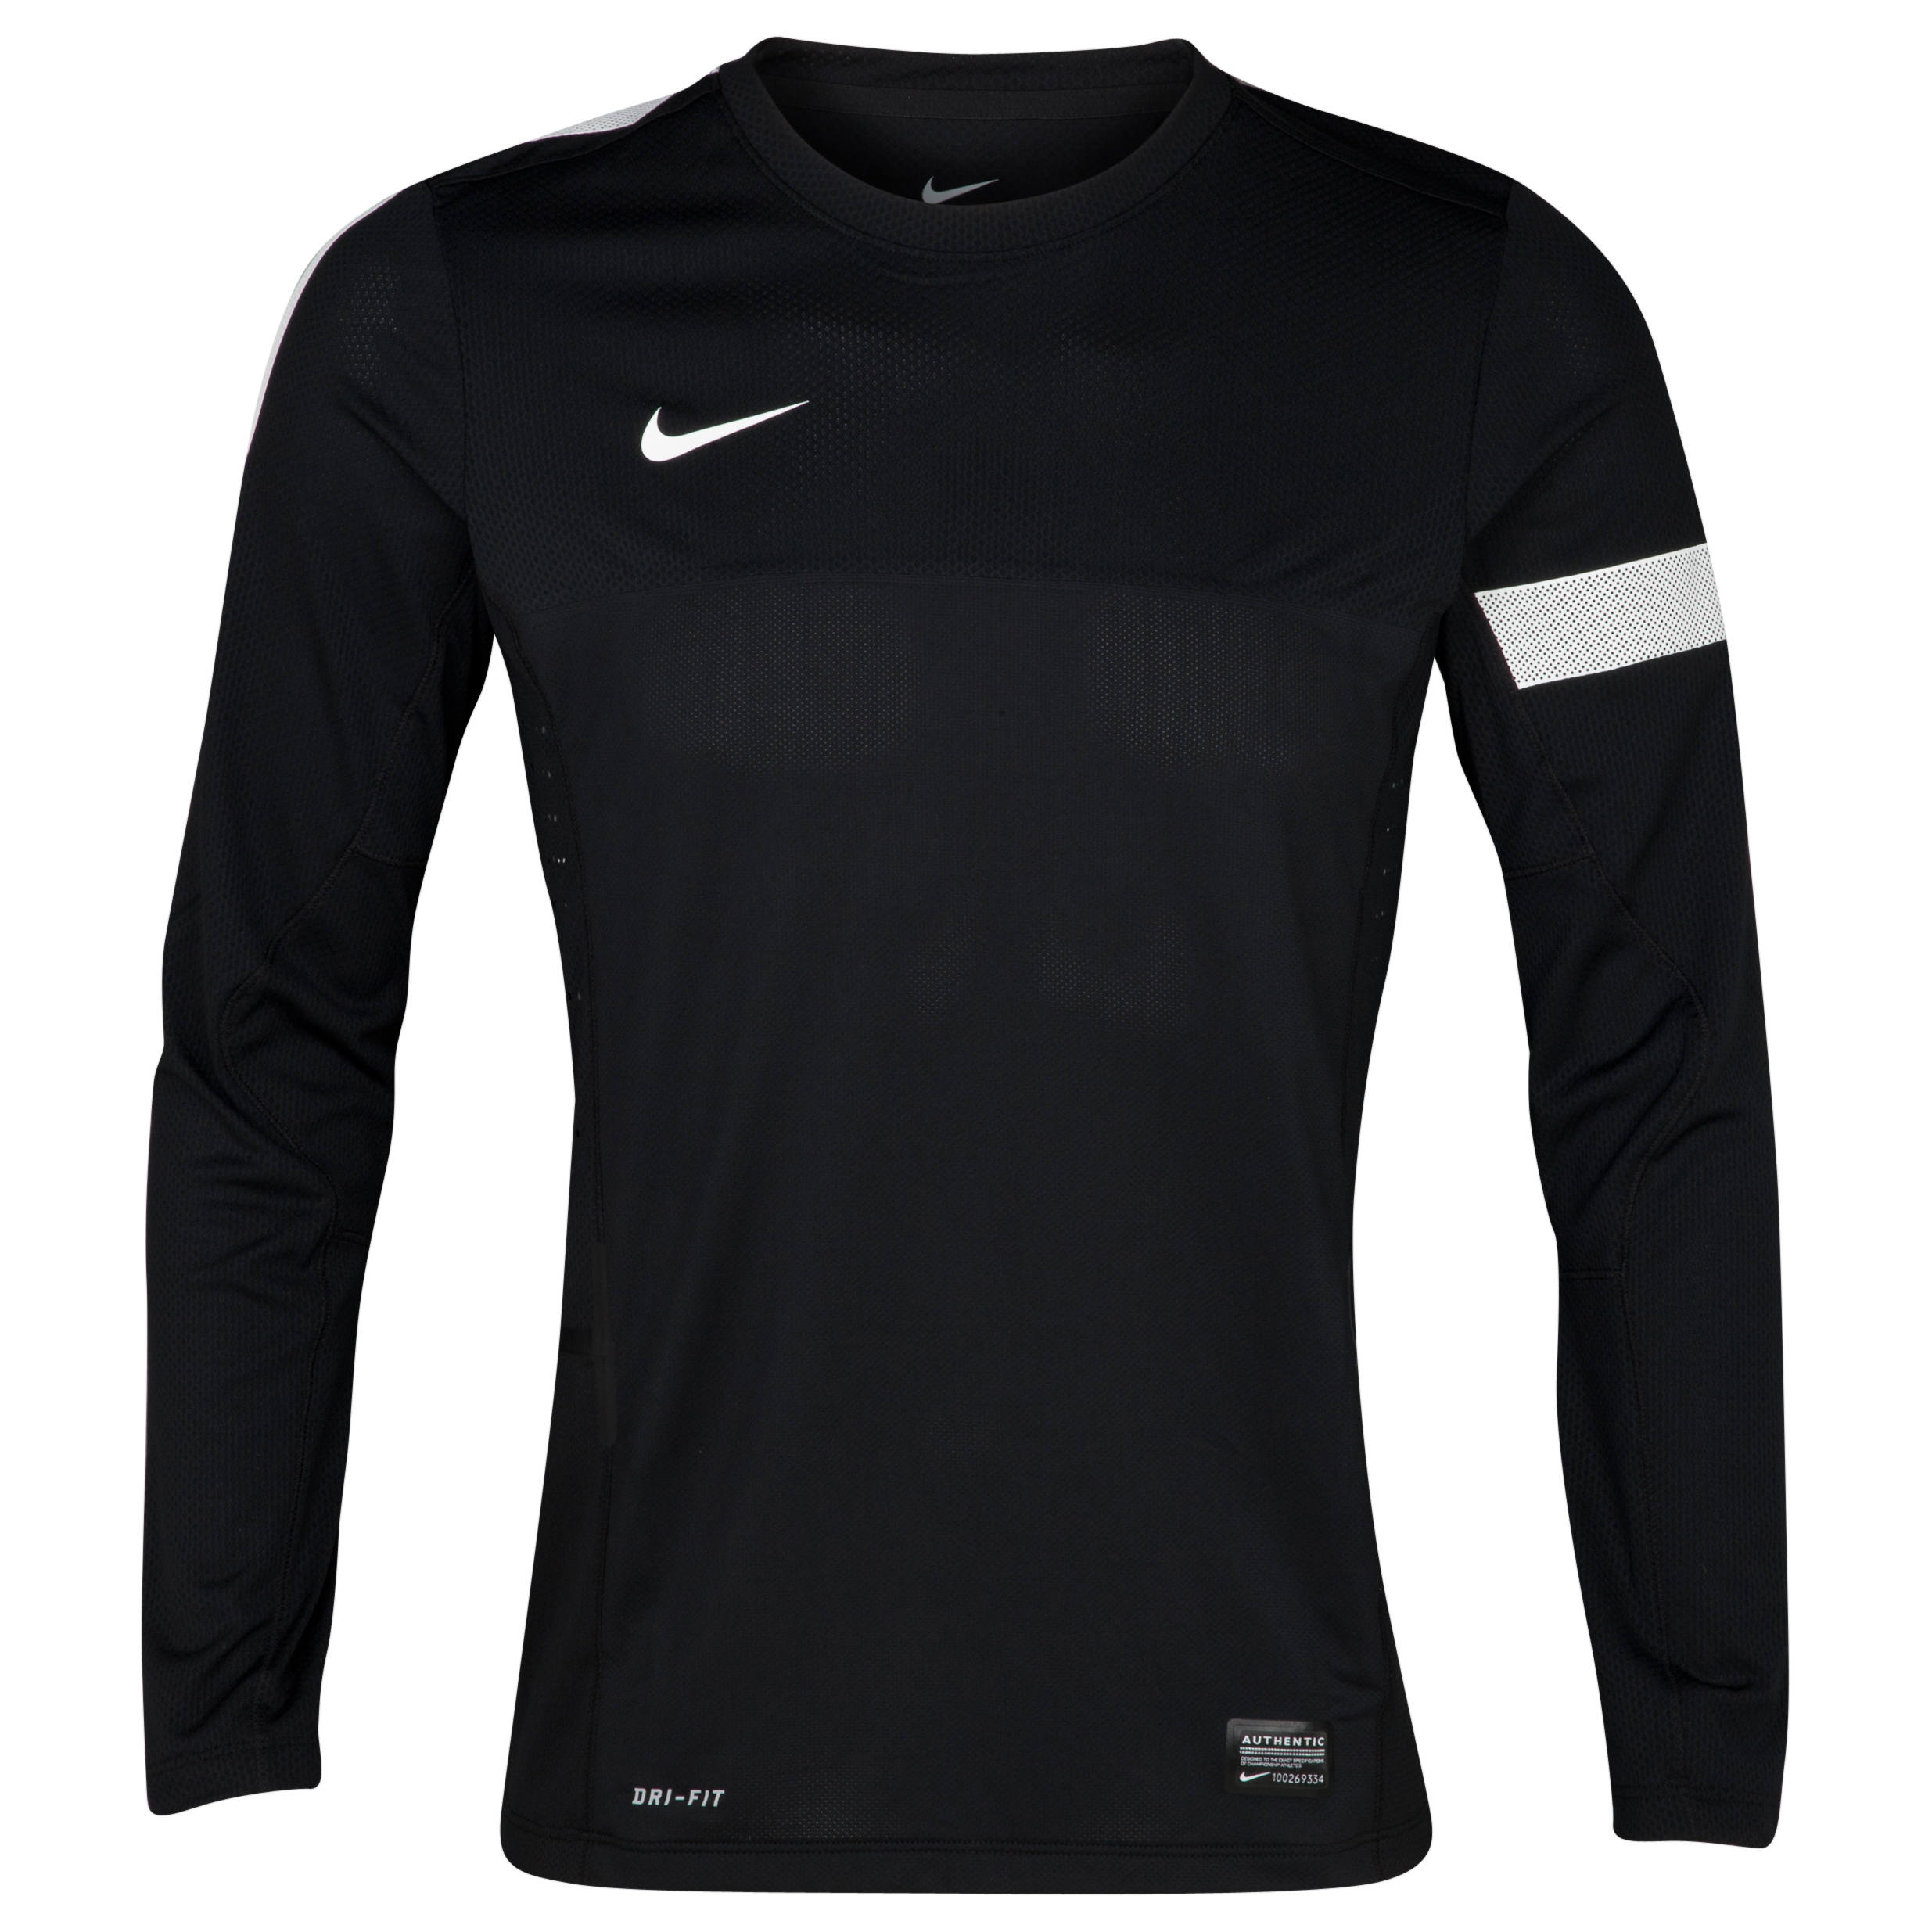 Nike Elite Training Top - Long Sleeve - Black/White